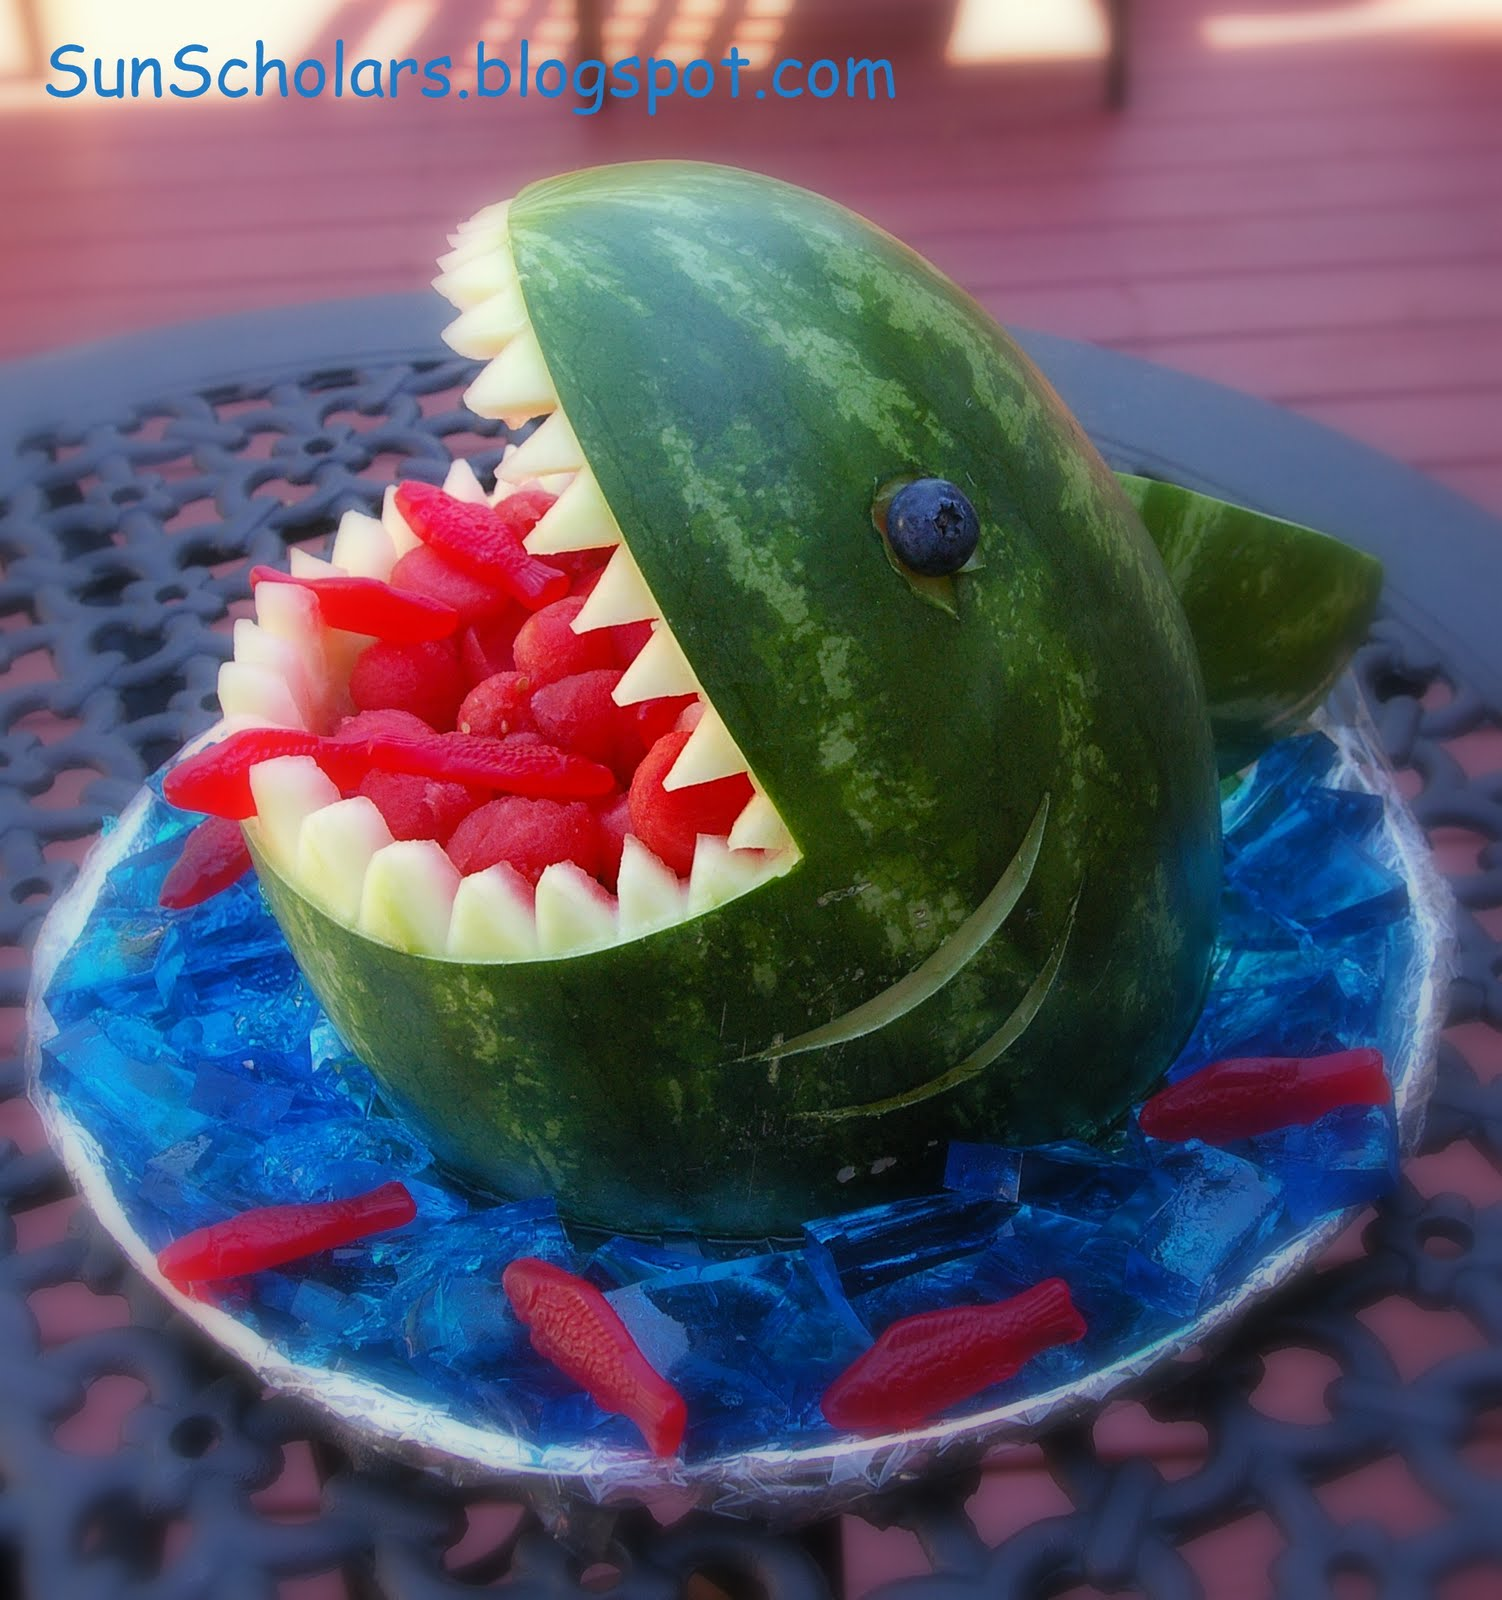 http://dollarstorecrafts.com/wp-content/uploads/2011/06/watermelon-shark-snack.jpg